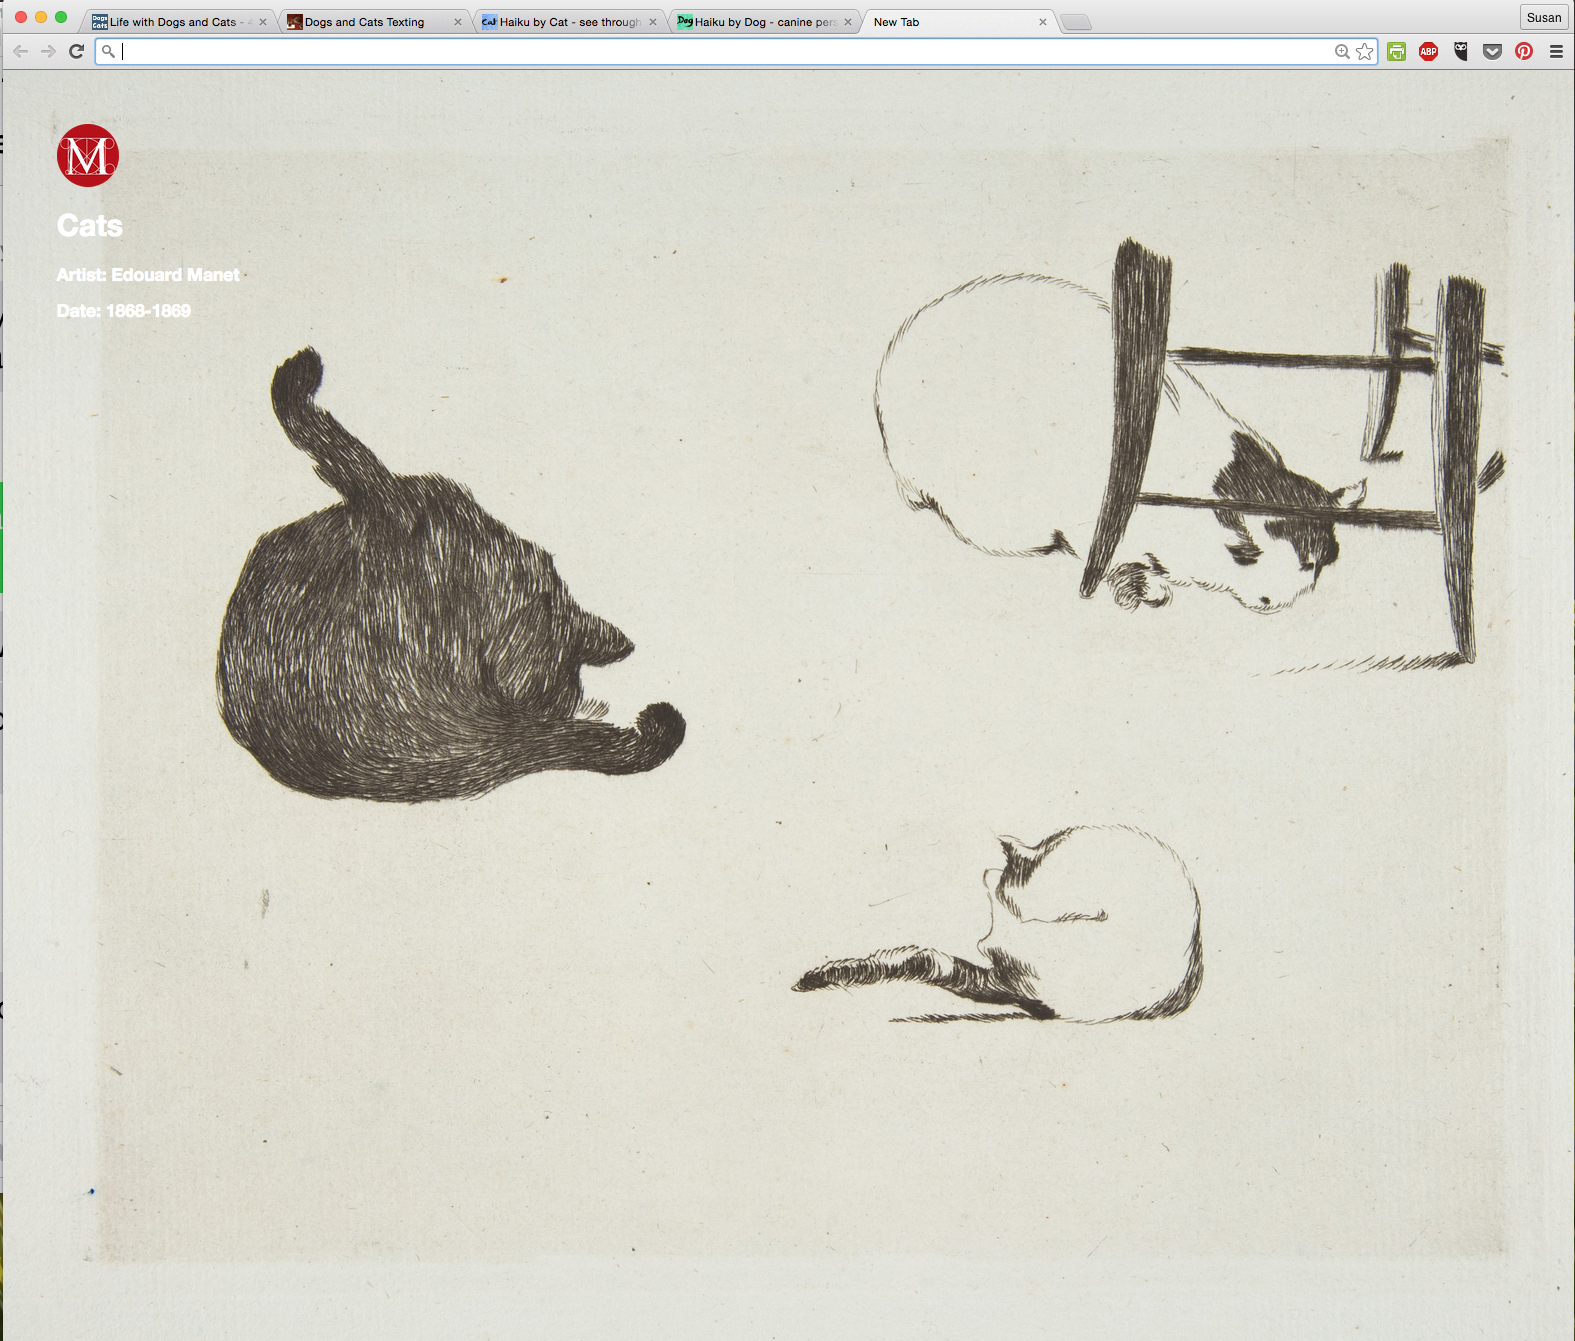 Cats by Edouard Manet from Meow Met Chrome Extension.